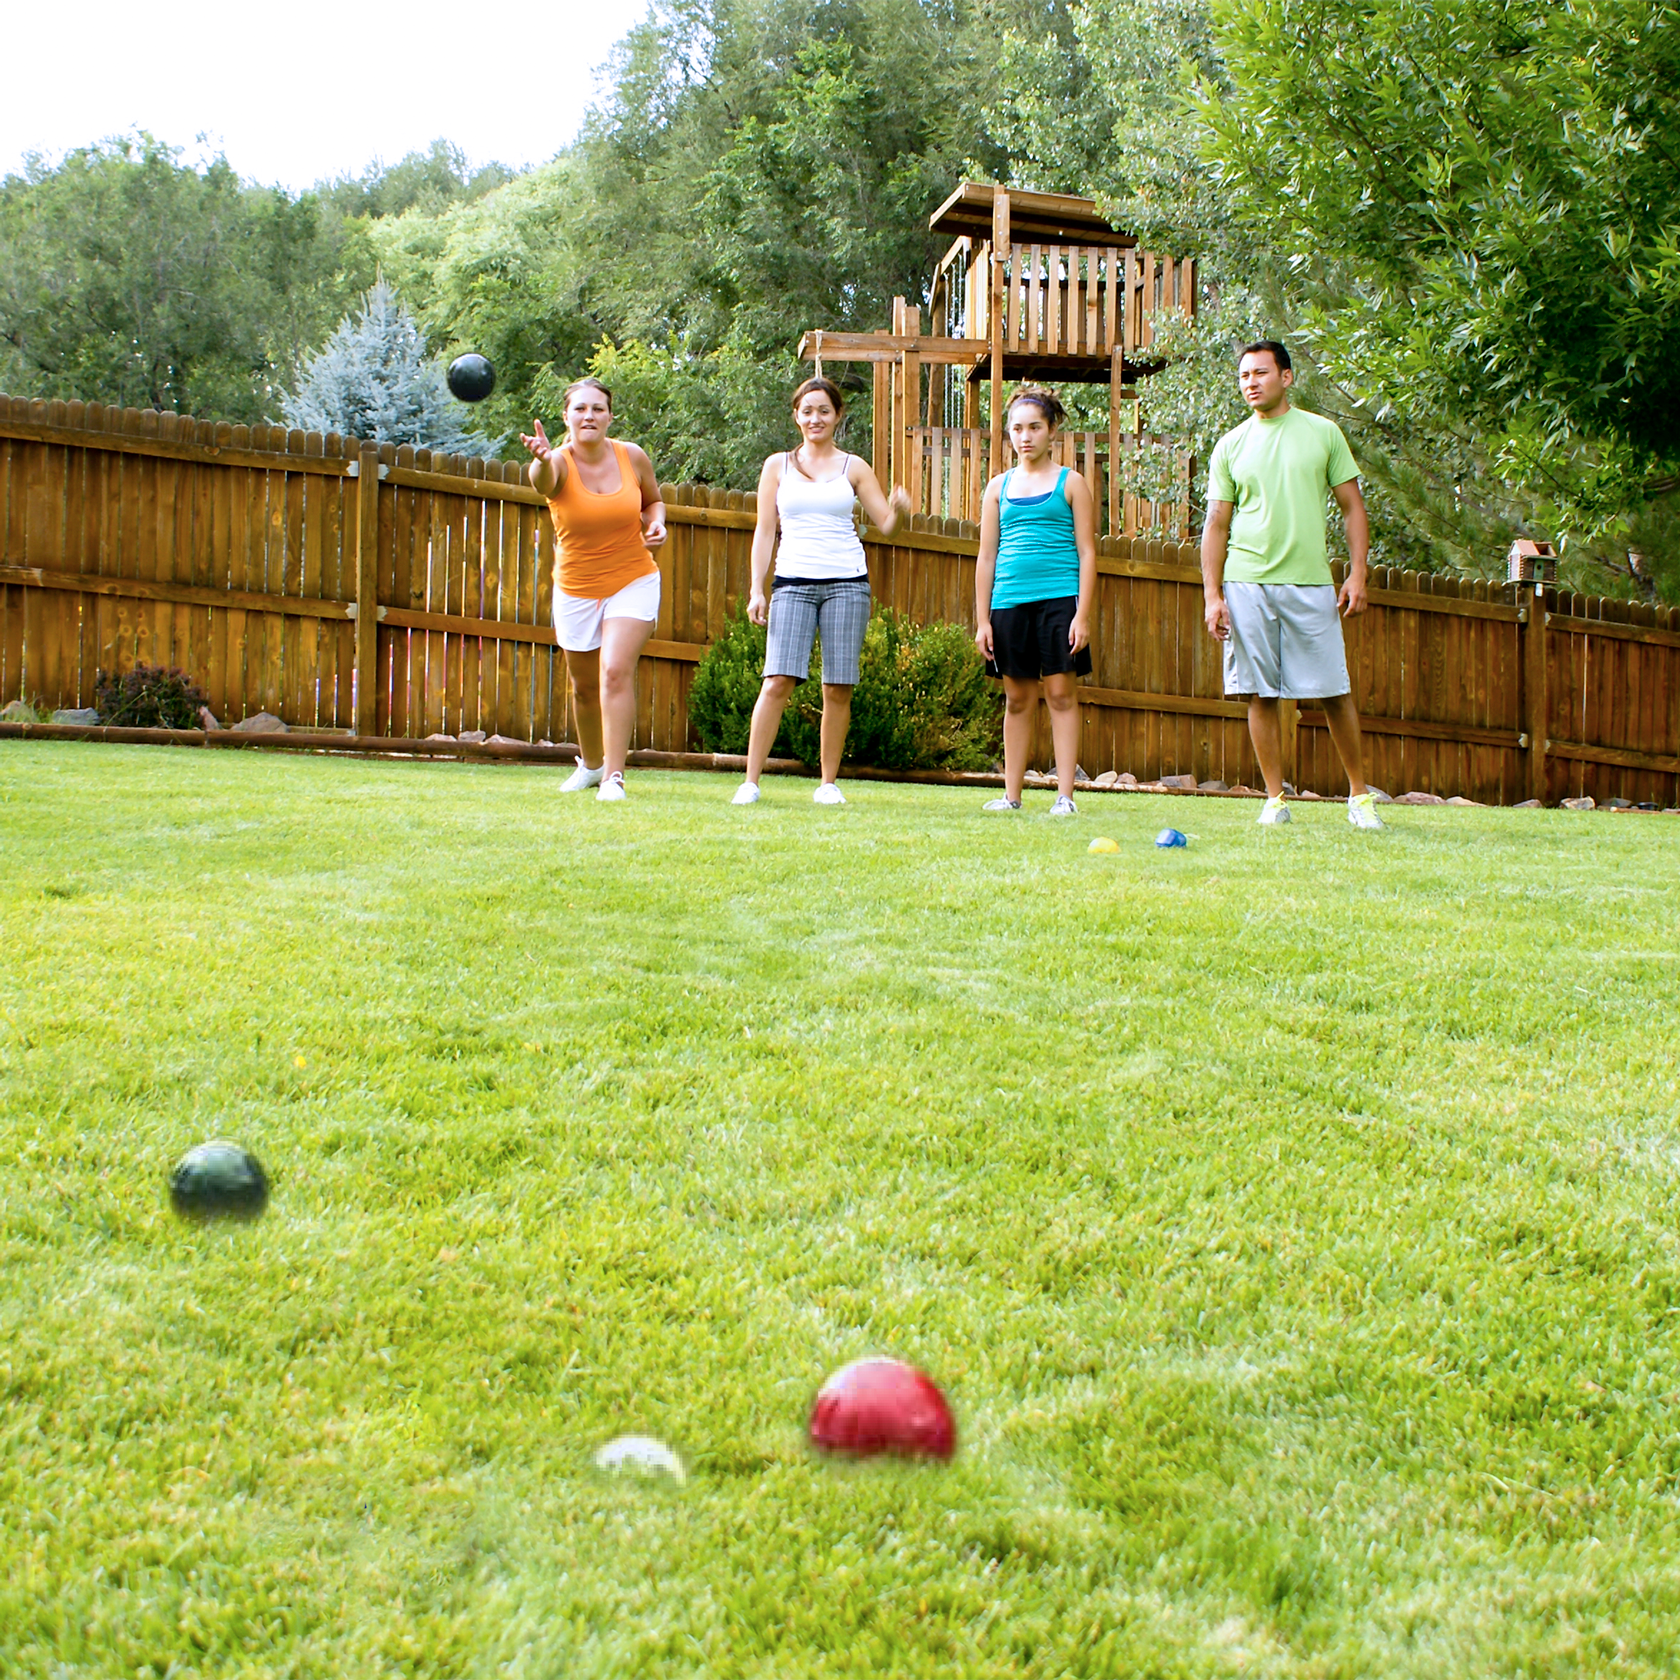 Quality Outdoor Family Bocce Game For Backyard Lawn